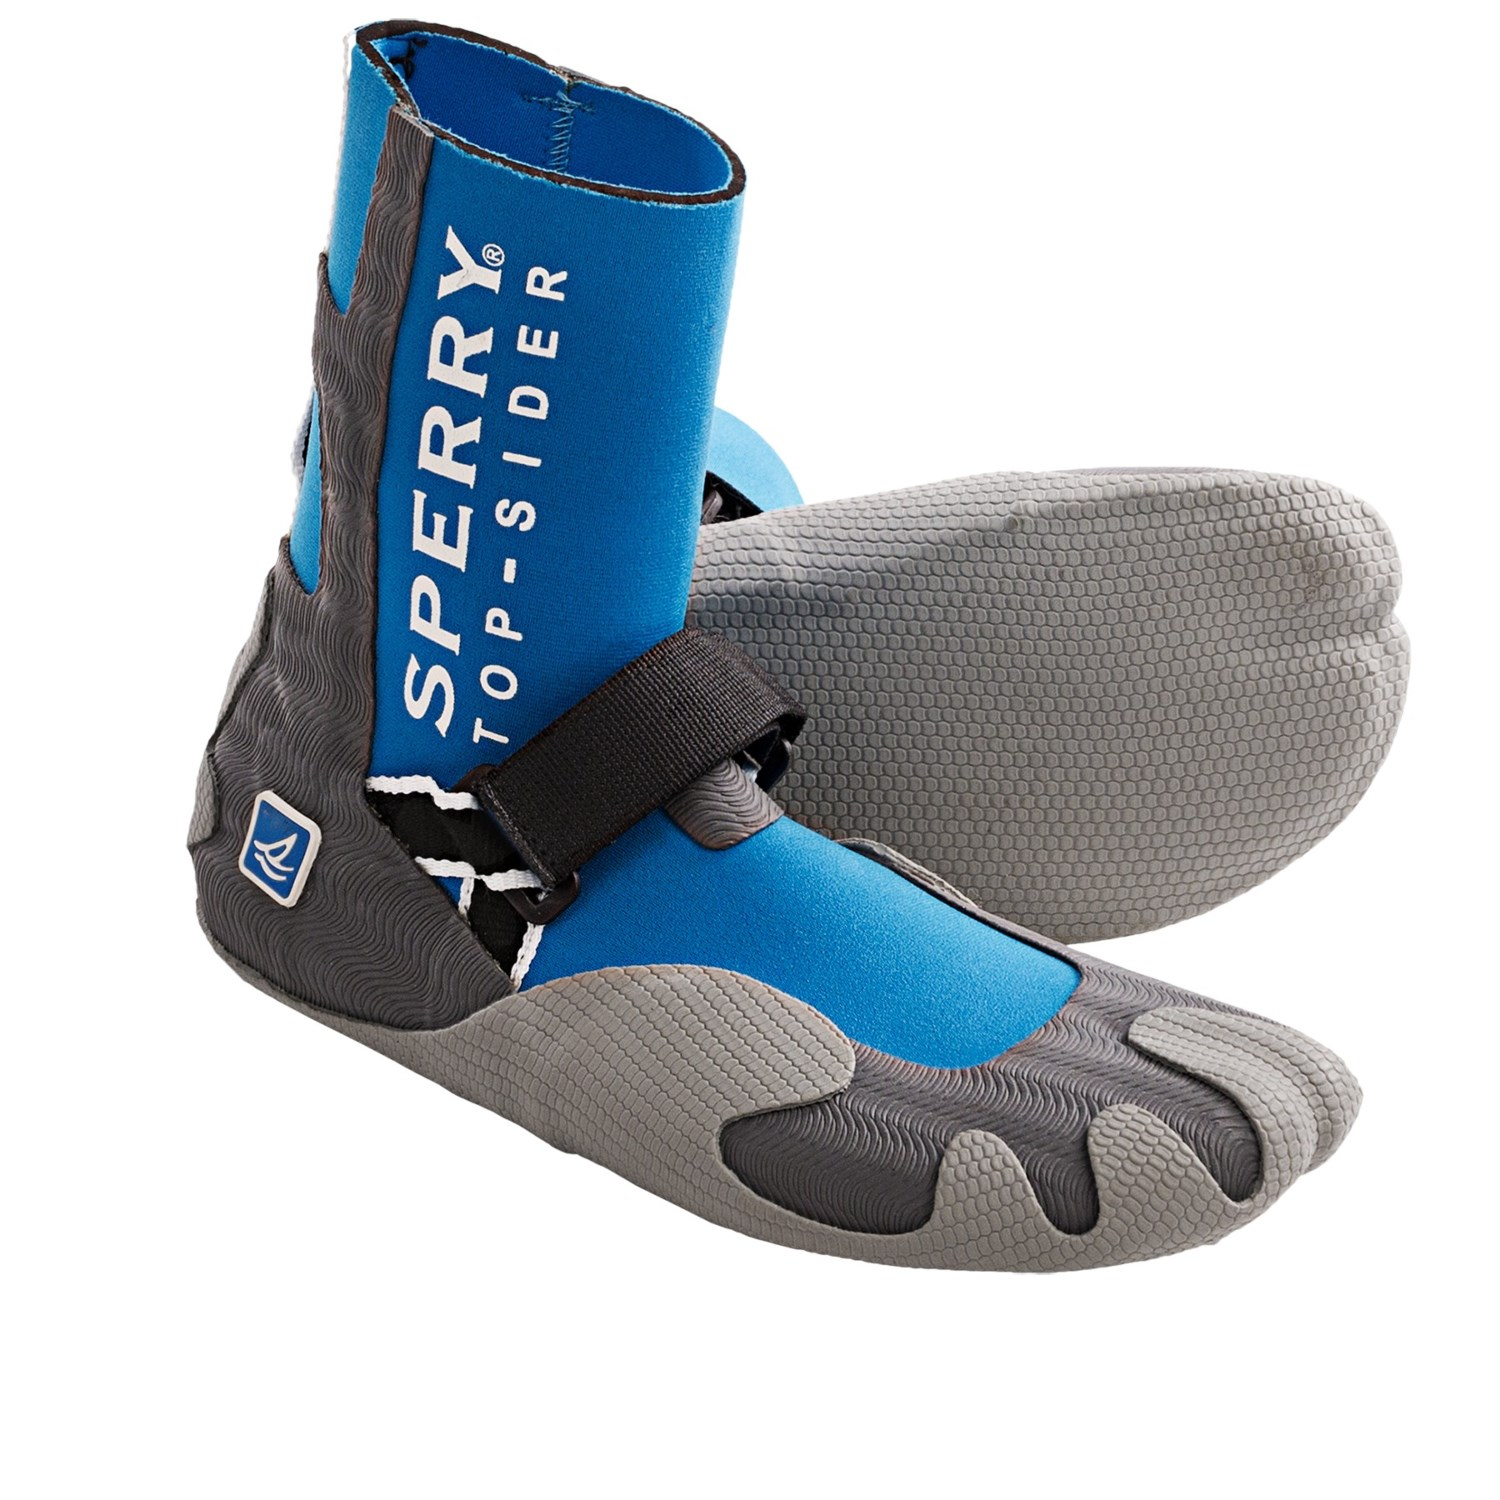 Men's Water Shoes: Average savings of 49% at Sierra Trading Post